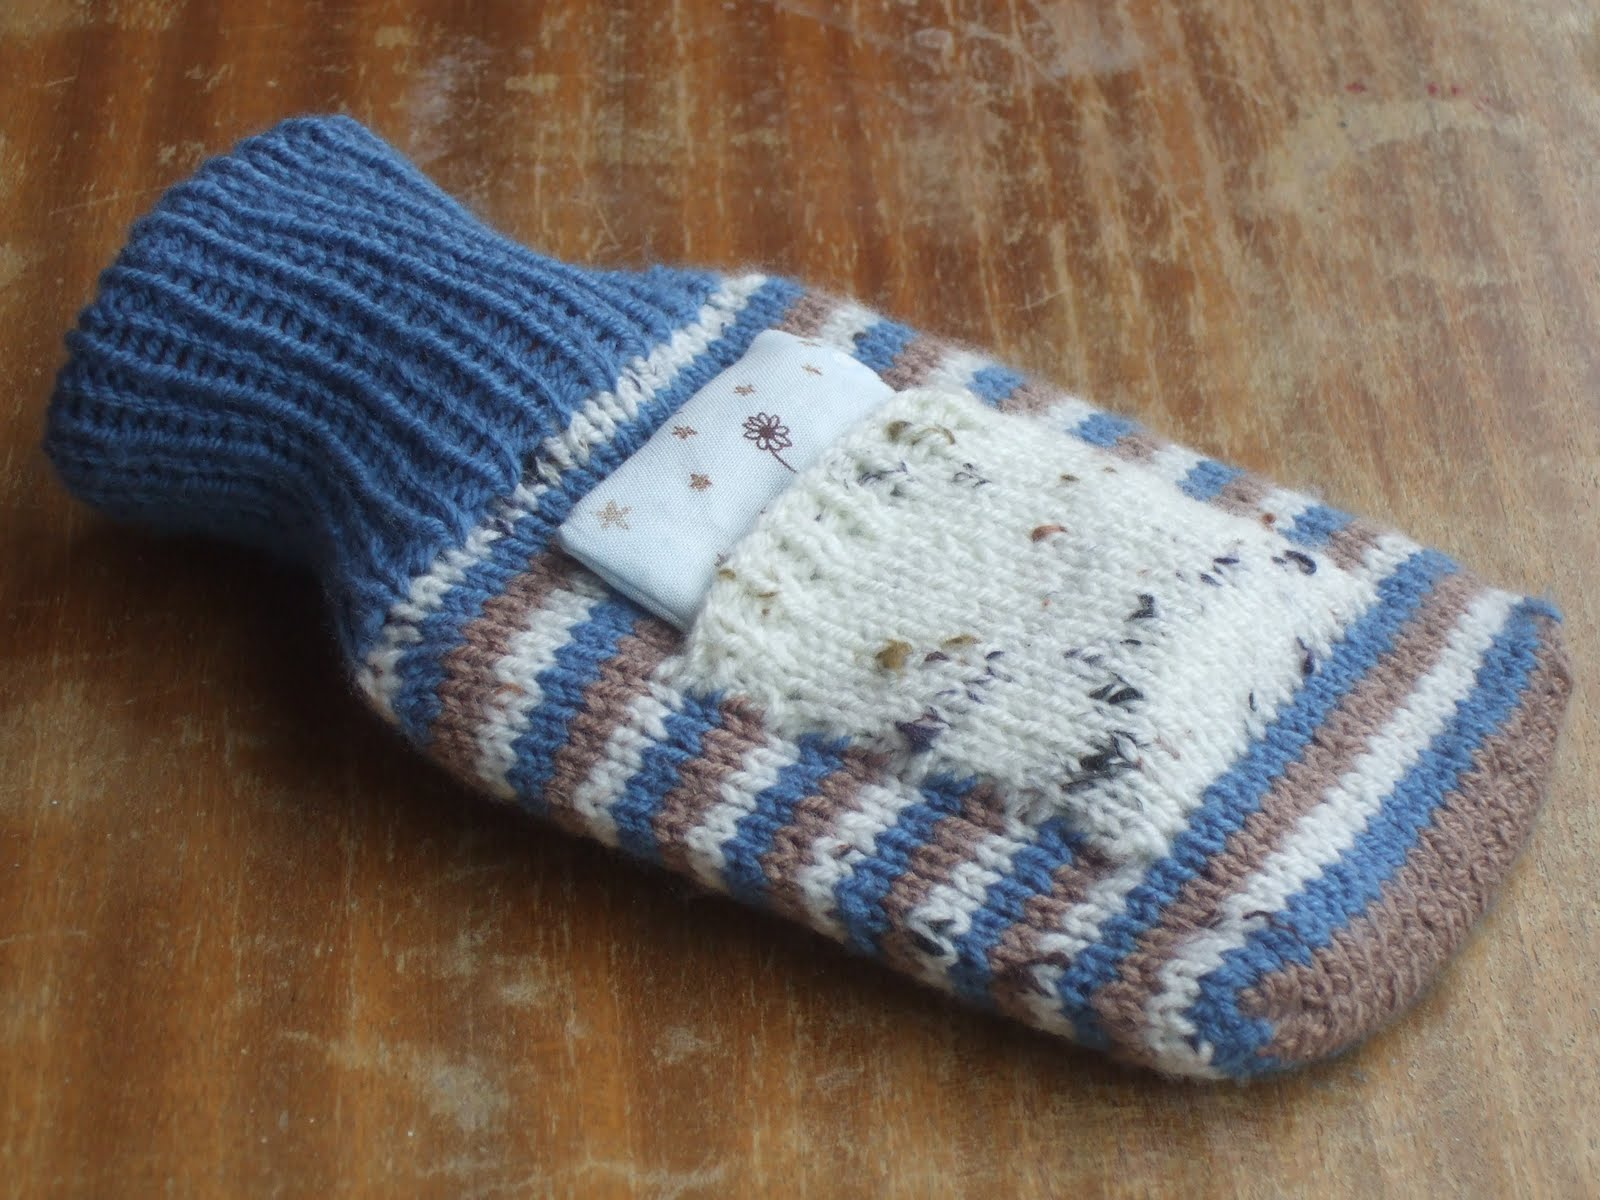 Free Knitting Pattern For Small Hot Water Bottle Cover : Made By Joanne: more quick knitted gifts: hot water bottle cover with lavende...